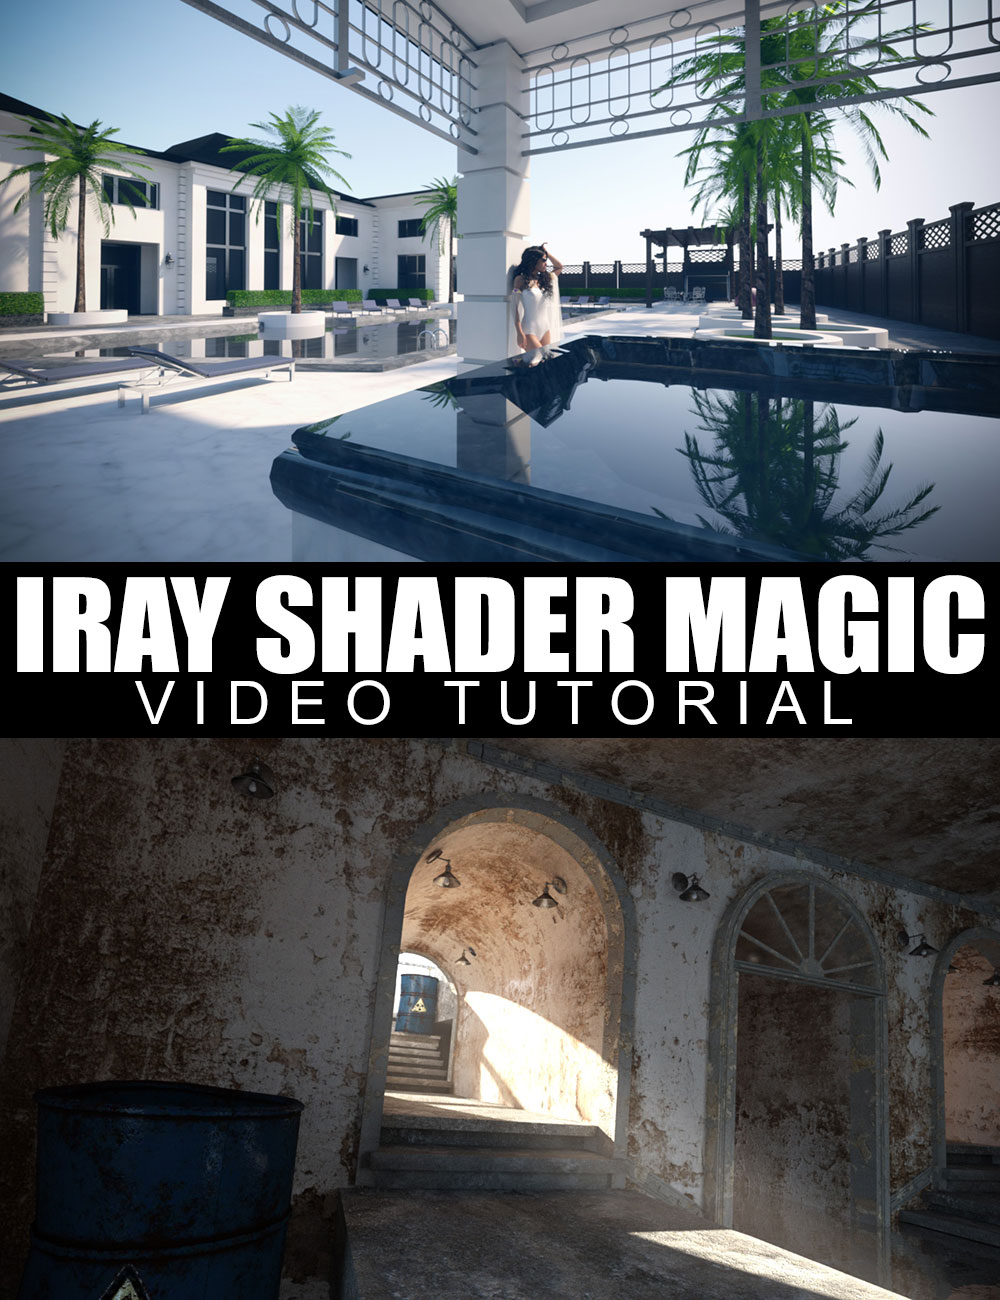 Iray Shader Magic - Video Tutorial by: Dreamlight, 3D Models by Daz 3D